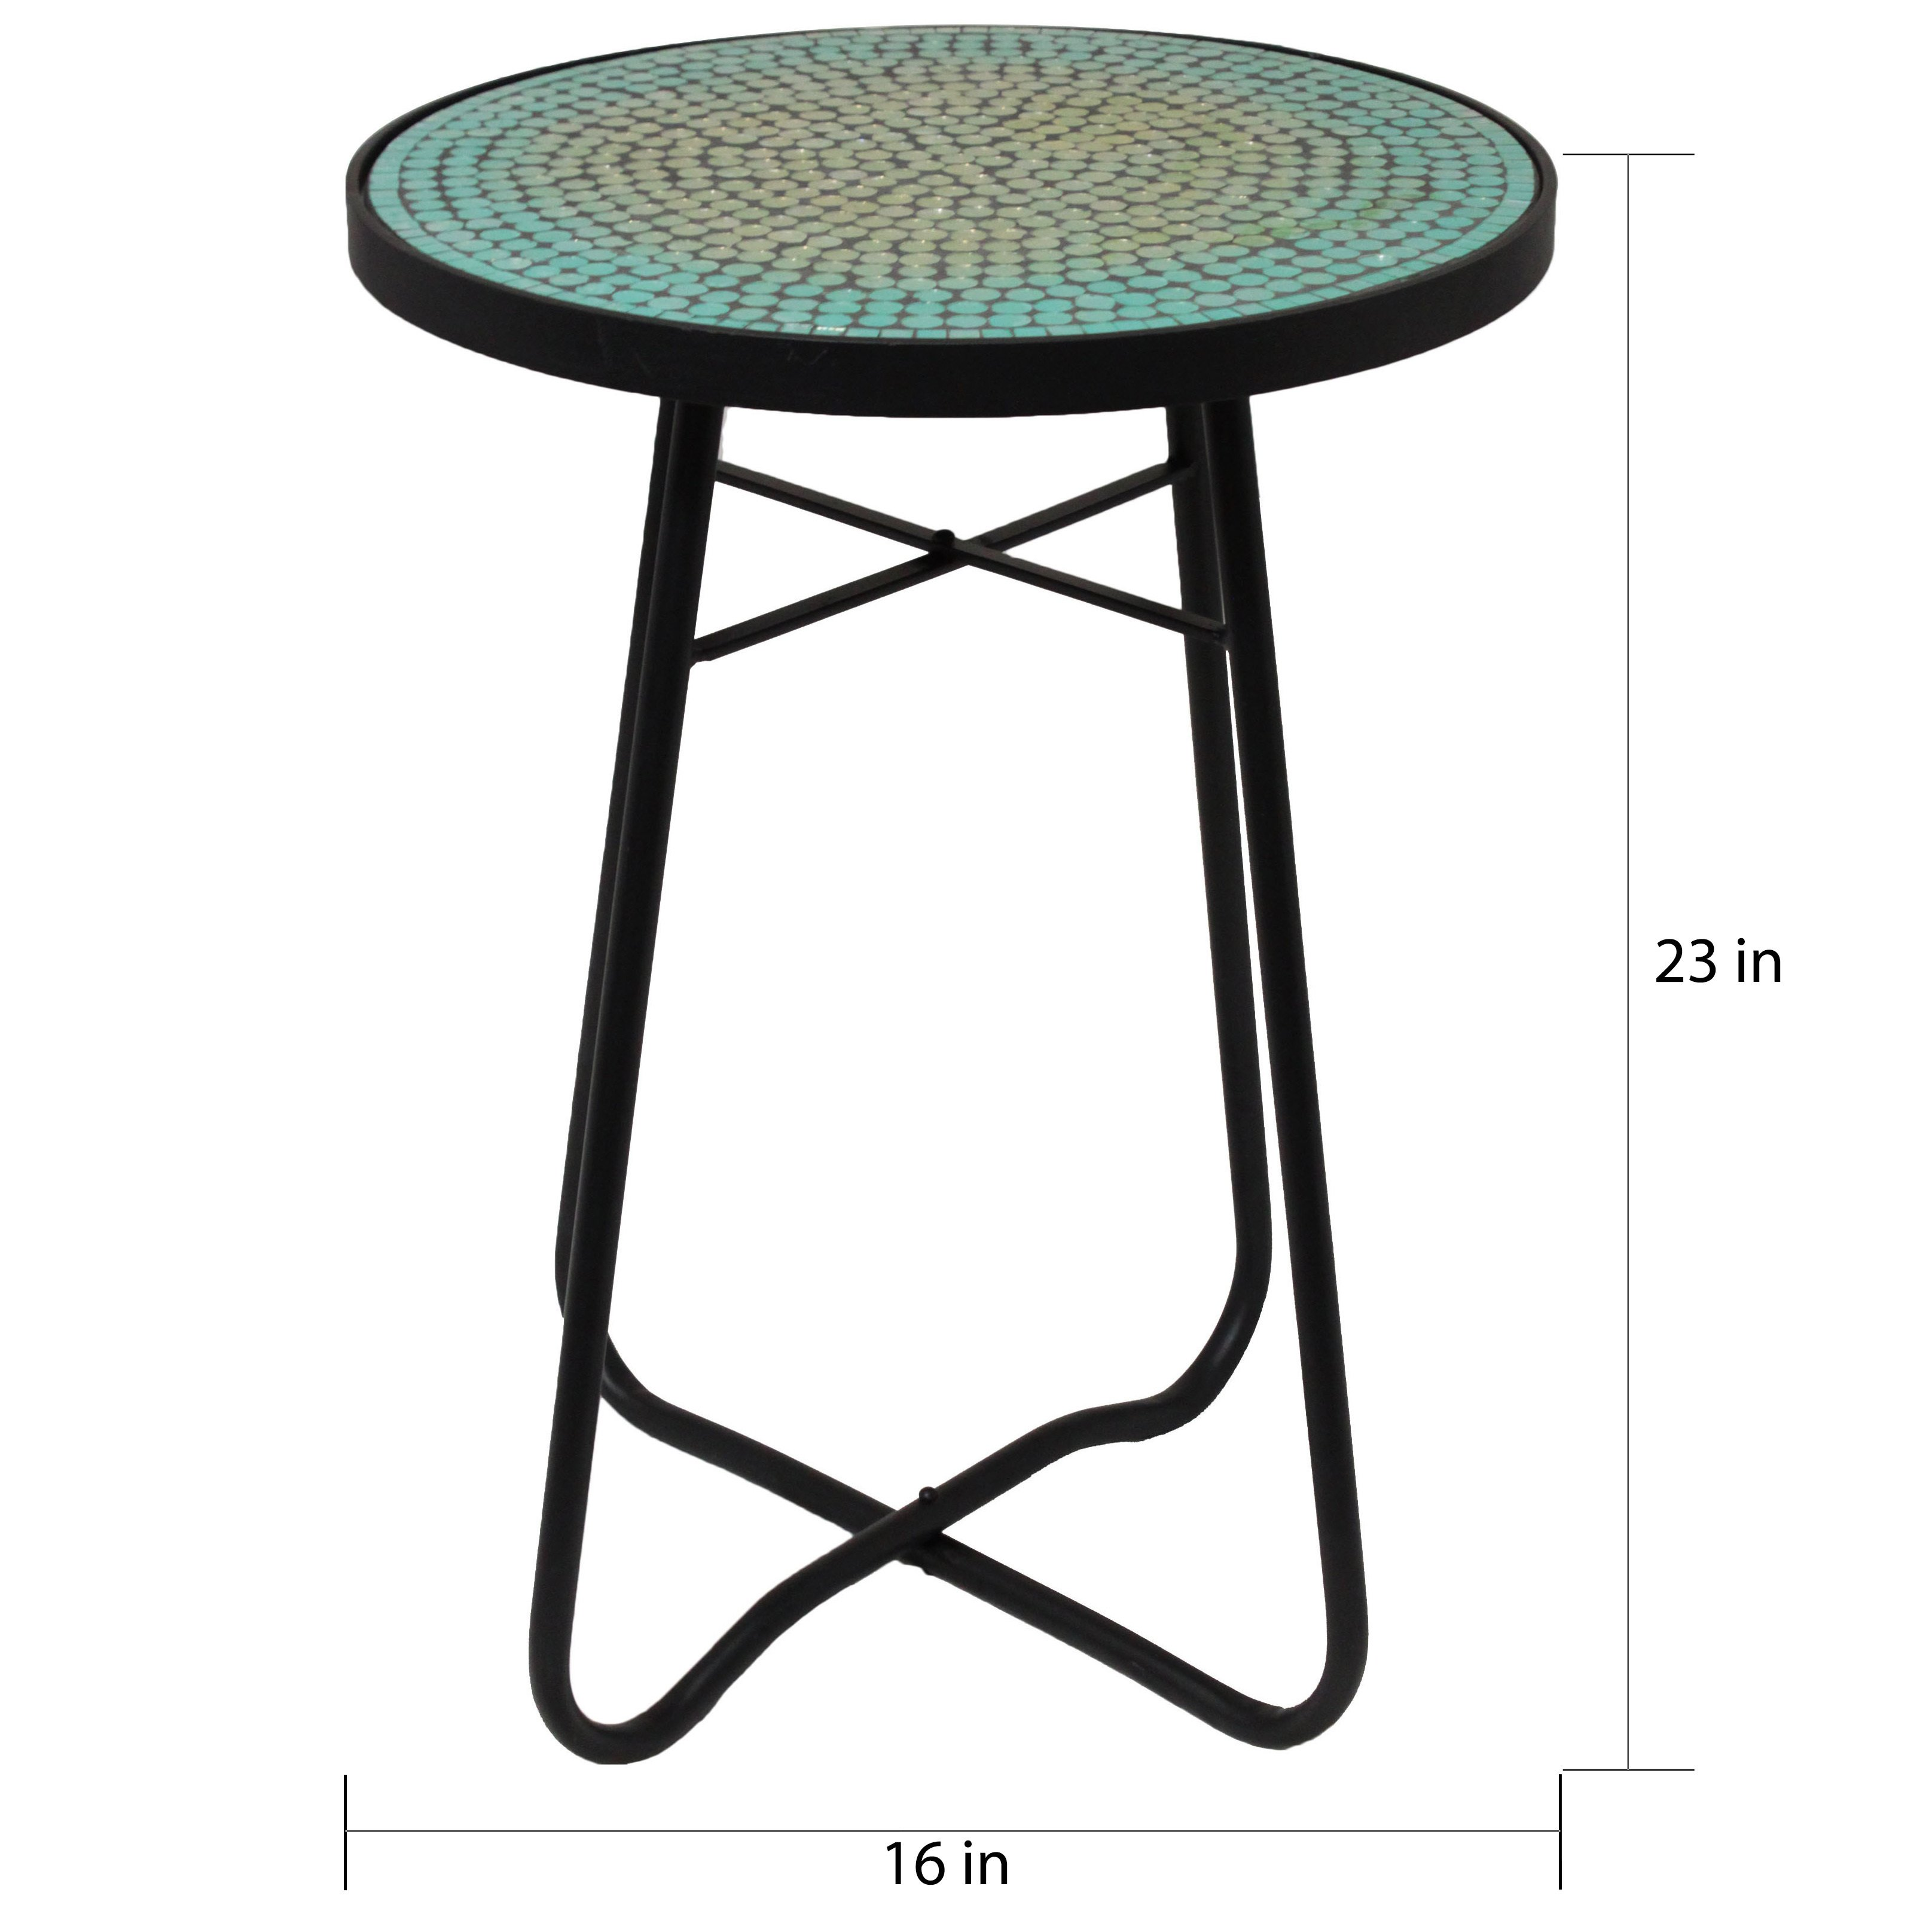 turquoise mosaic round patio side accent table free shipping today metal dining chairs target triangle shaped corner iron ikea plastic storage boxes trestle pine funky lamps small